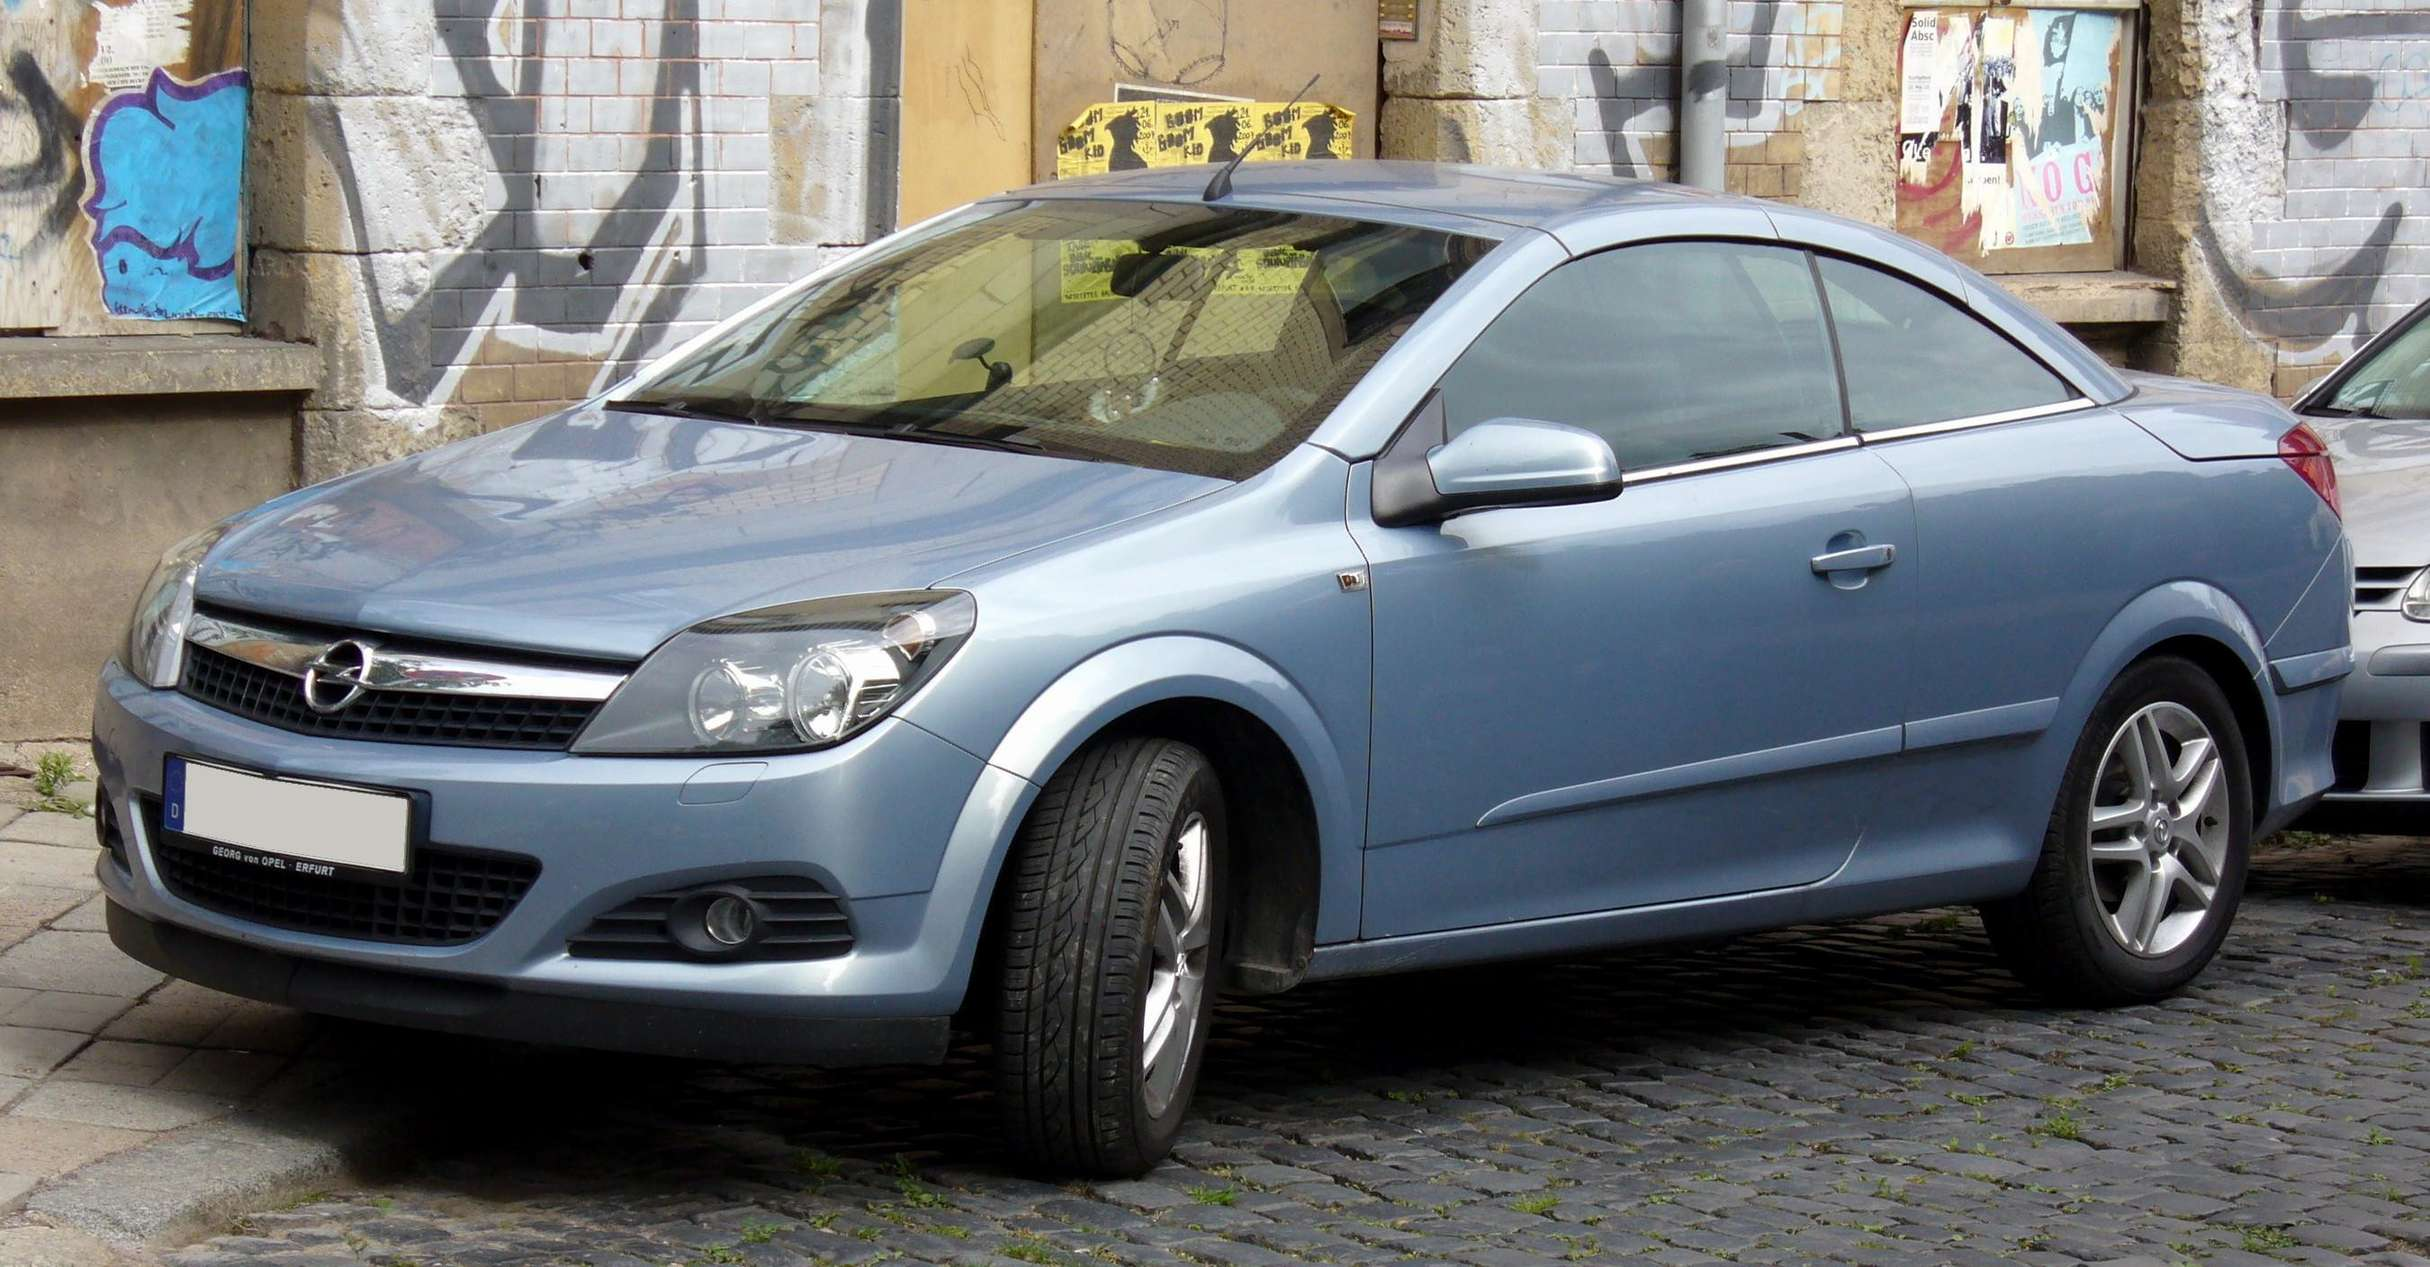 Opel Astra TwinTop #8977628